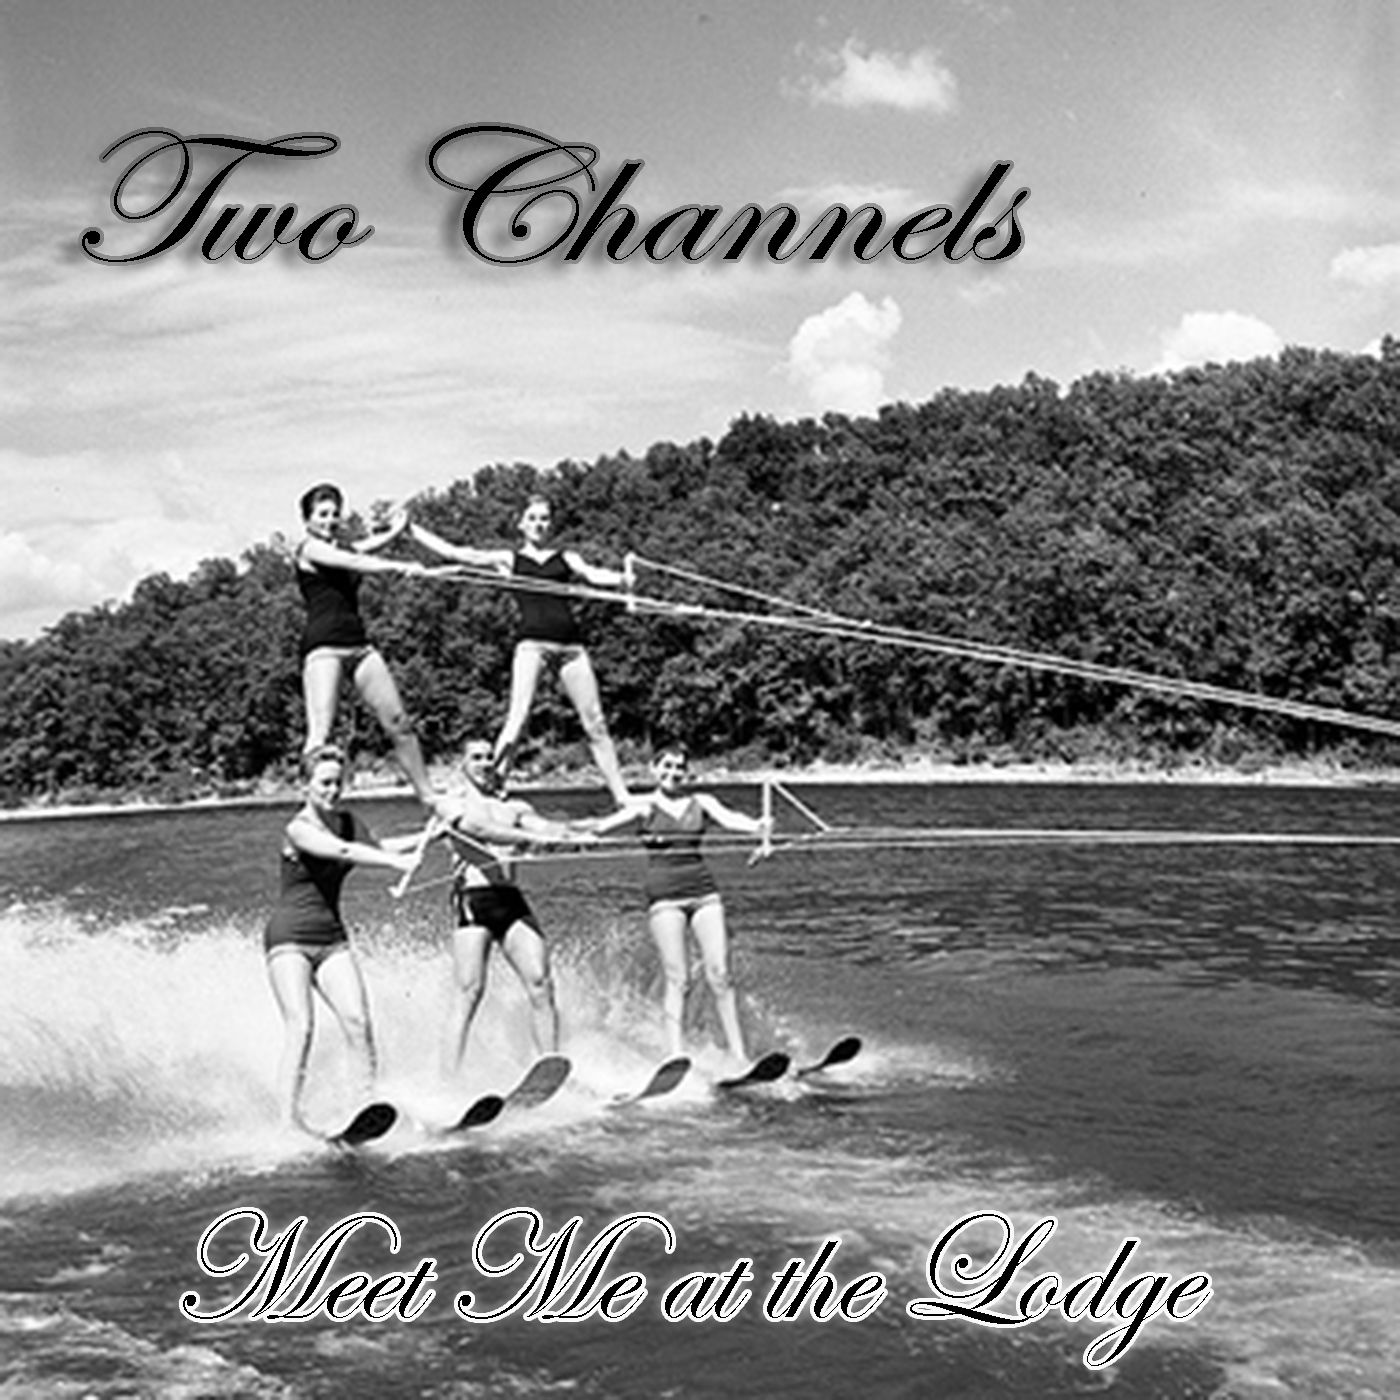 Two Channels new single out now on iTunes!  TwoChannels.Bandcamp.com